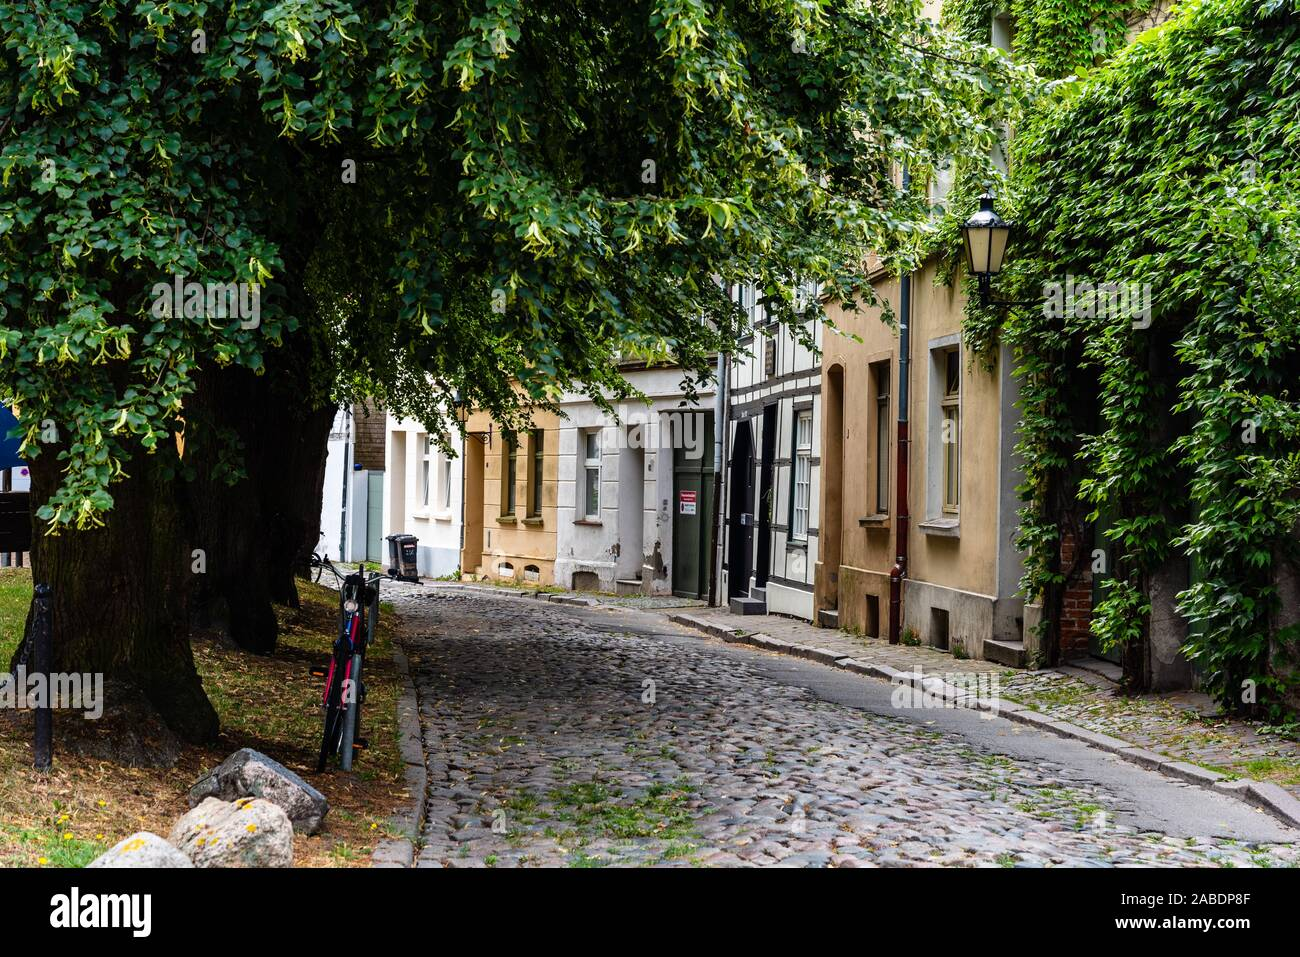 Wismar, Germany - August 2, 2019: Street view of the old city centre of Wismar in Germany Stock Photo